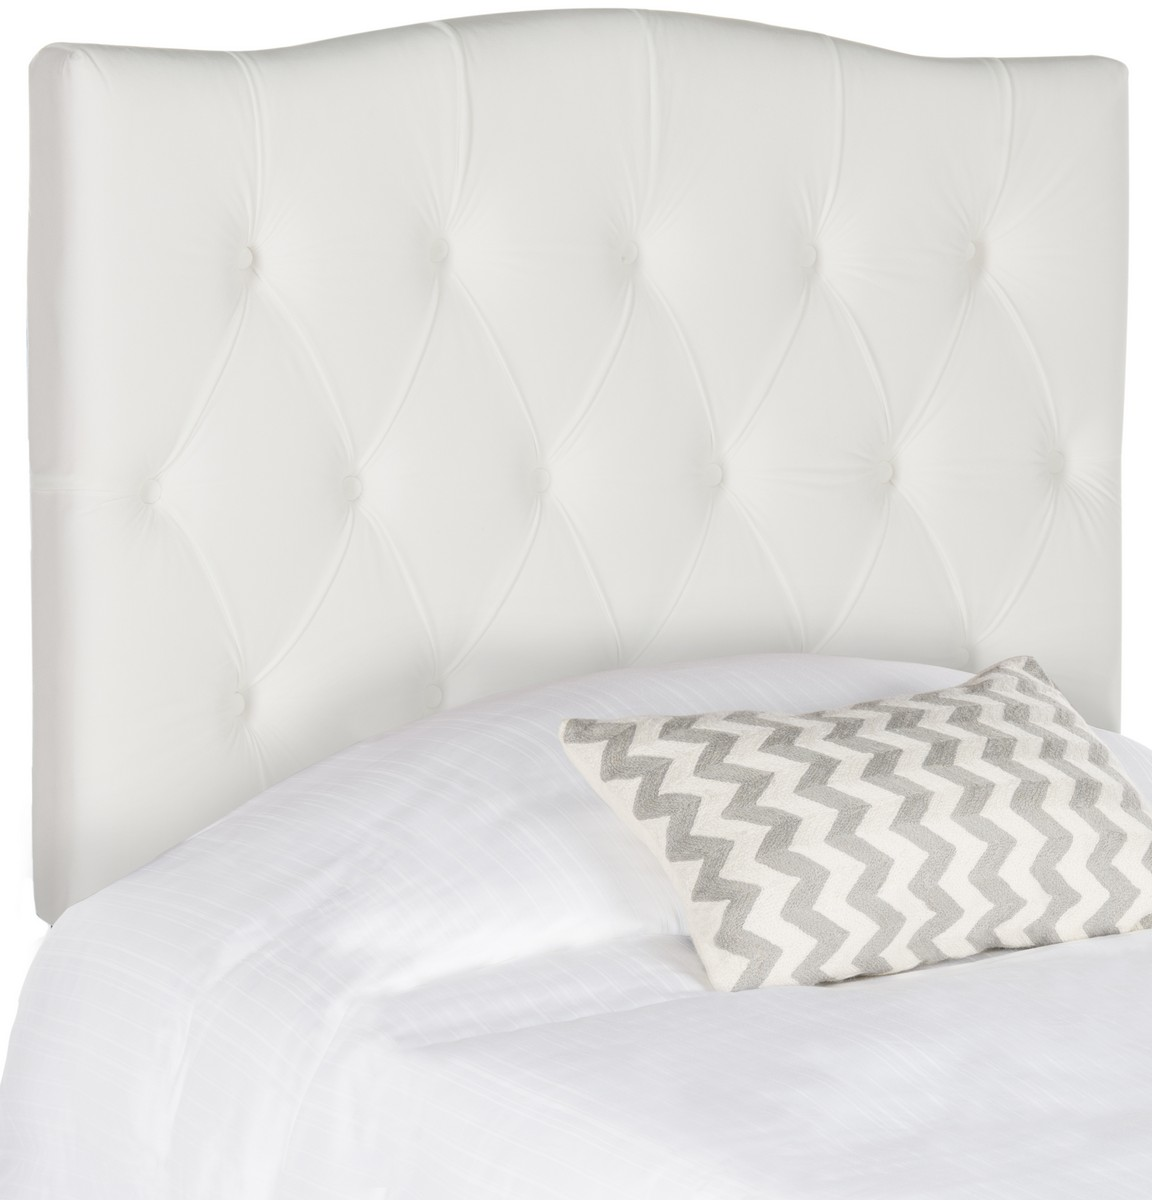 tufted trends padded also twin floral fancy fabric ideas bed white headboards black upholstered printed bookcase headboard